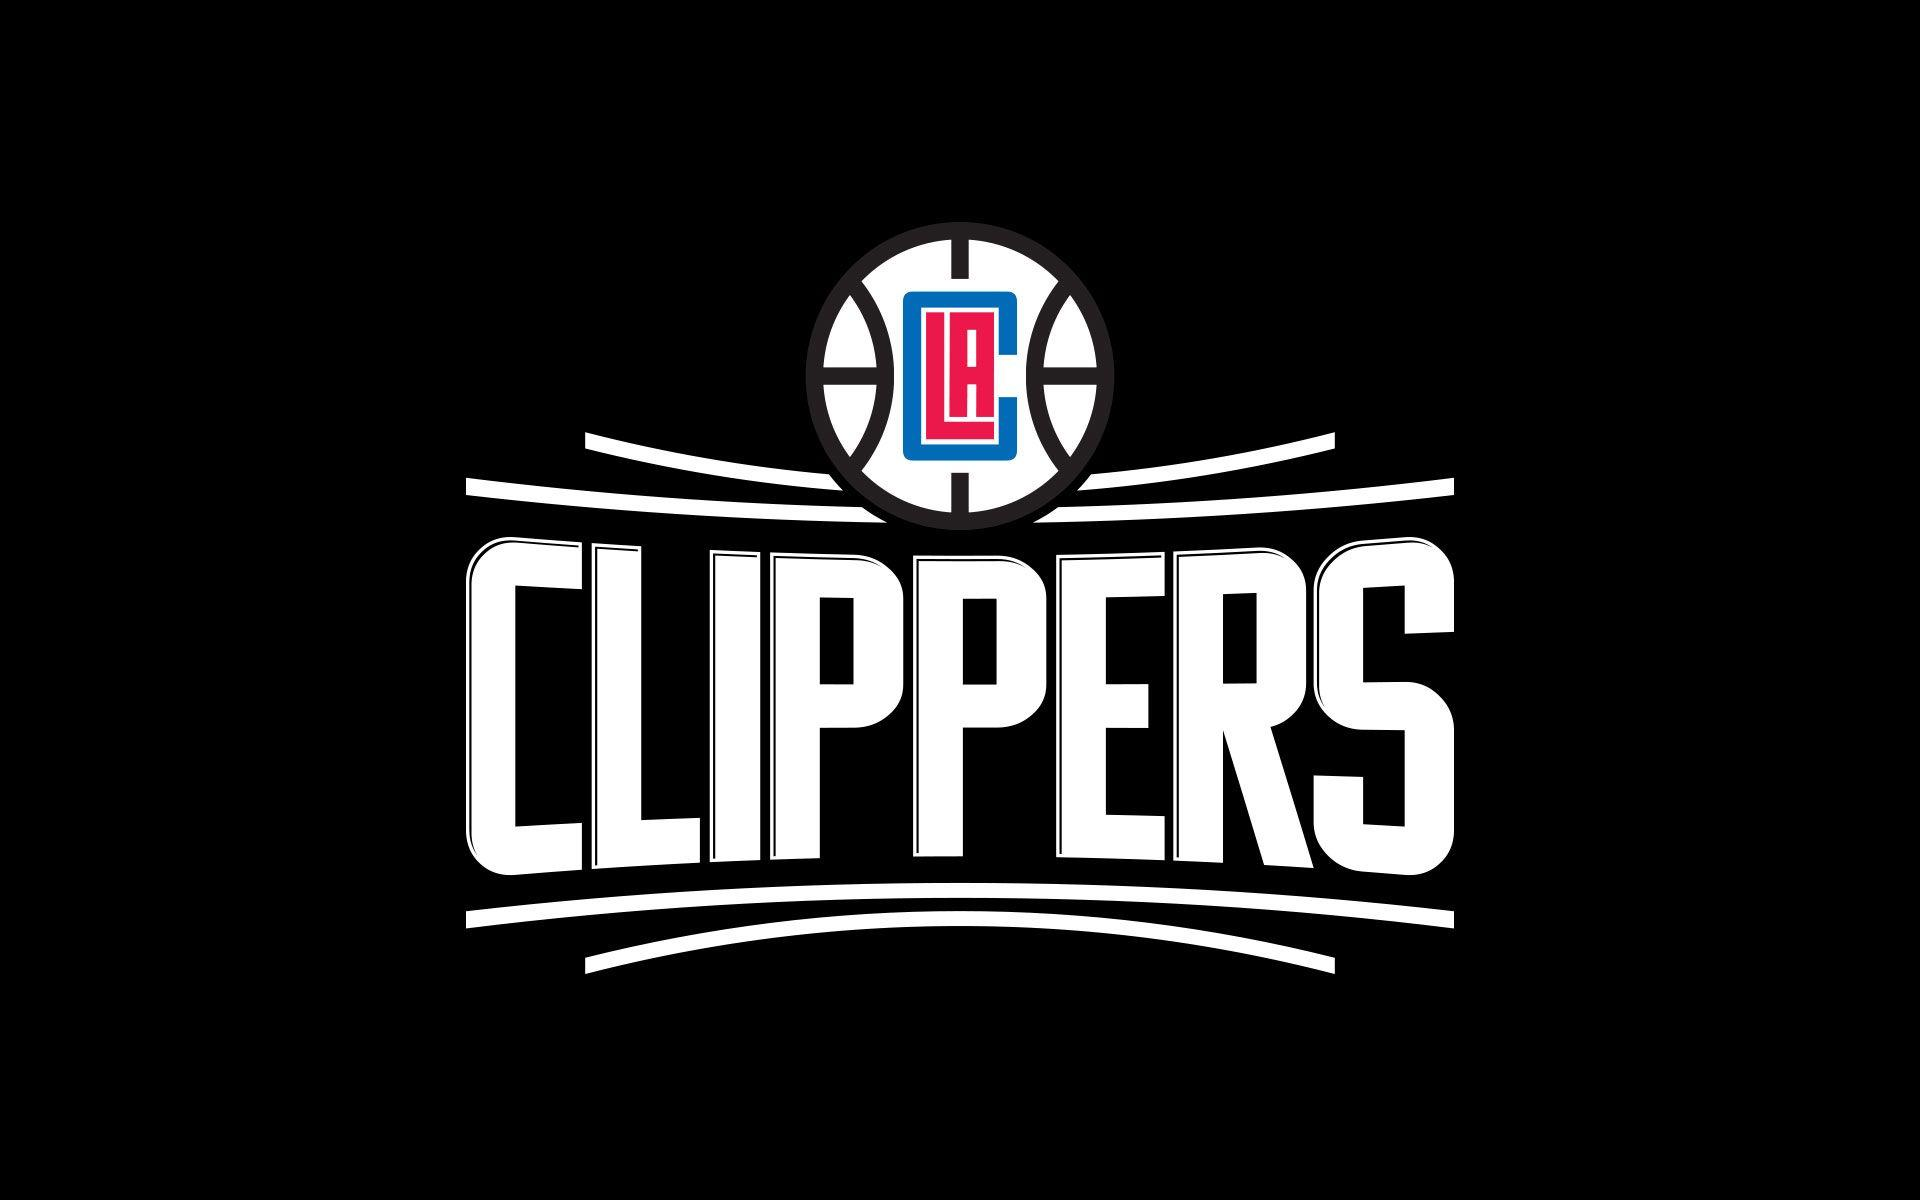 Los Angeles Clippers wallpapers HD backgrounds download desktop